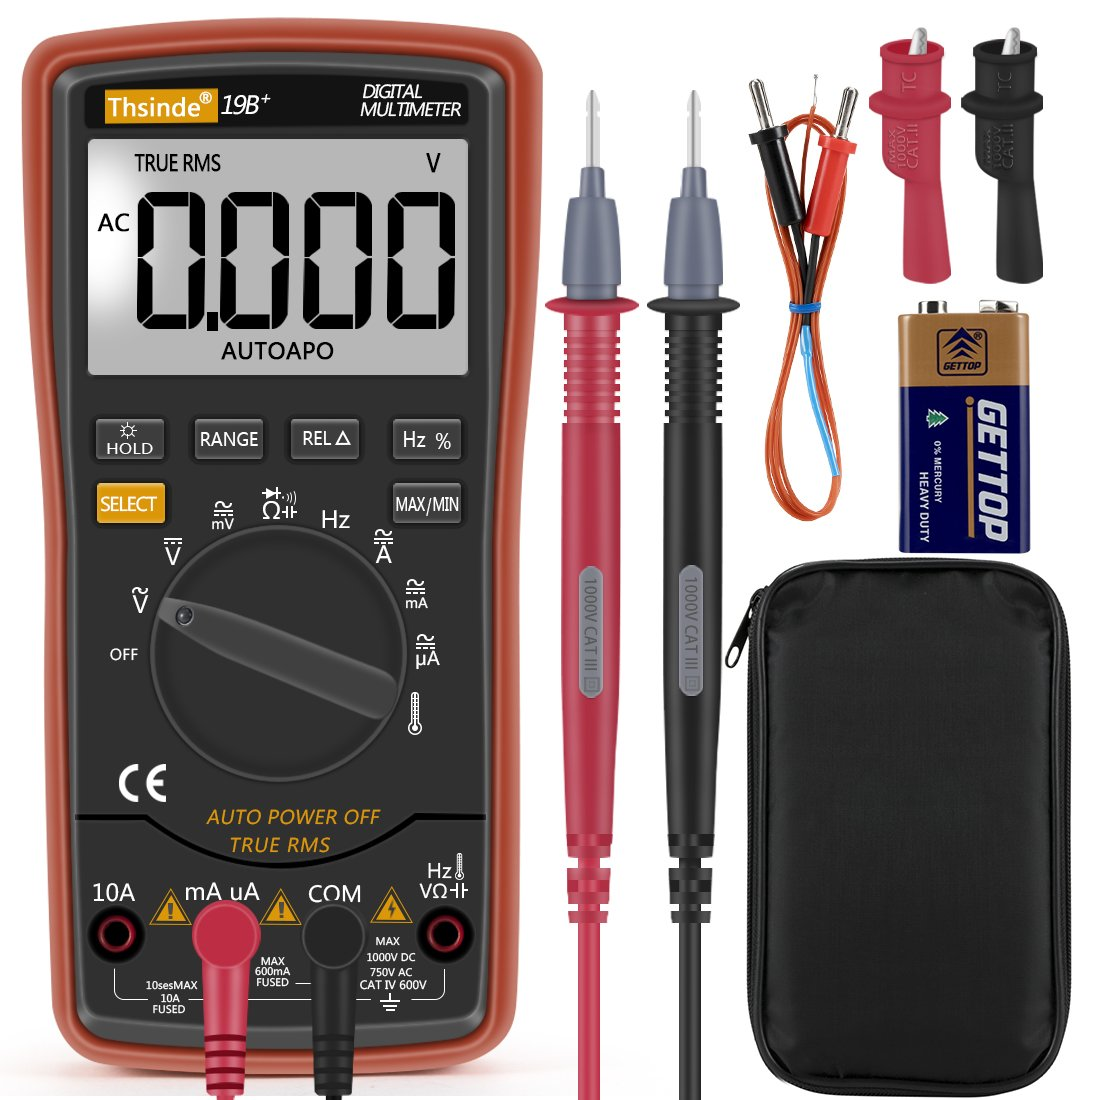 Thsinde Auto Ranging Digital Multimeter, Measures,Voltage, Current, Resistance, Continuity, Capacitance, Frequency, tests Diodes Transistors, Temperature, Lcd back light